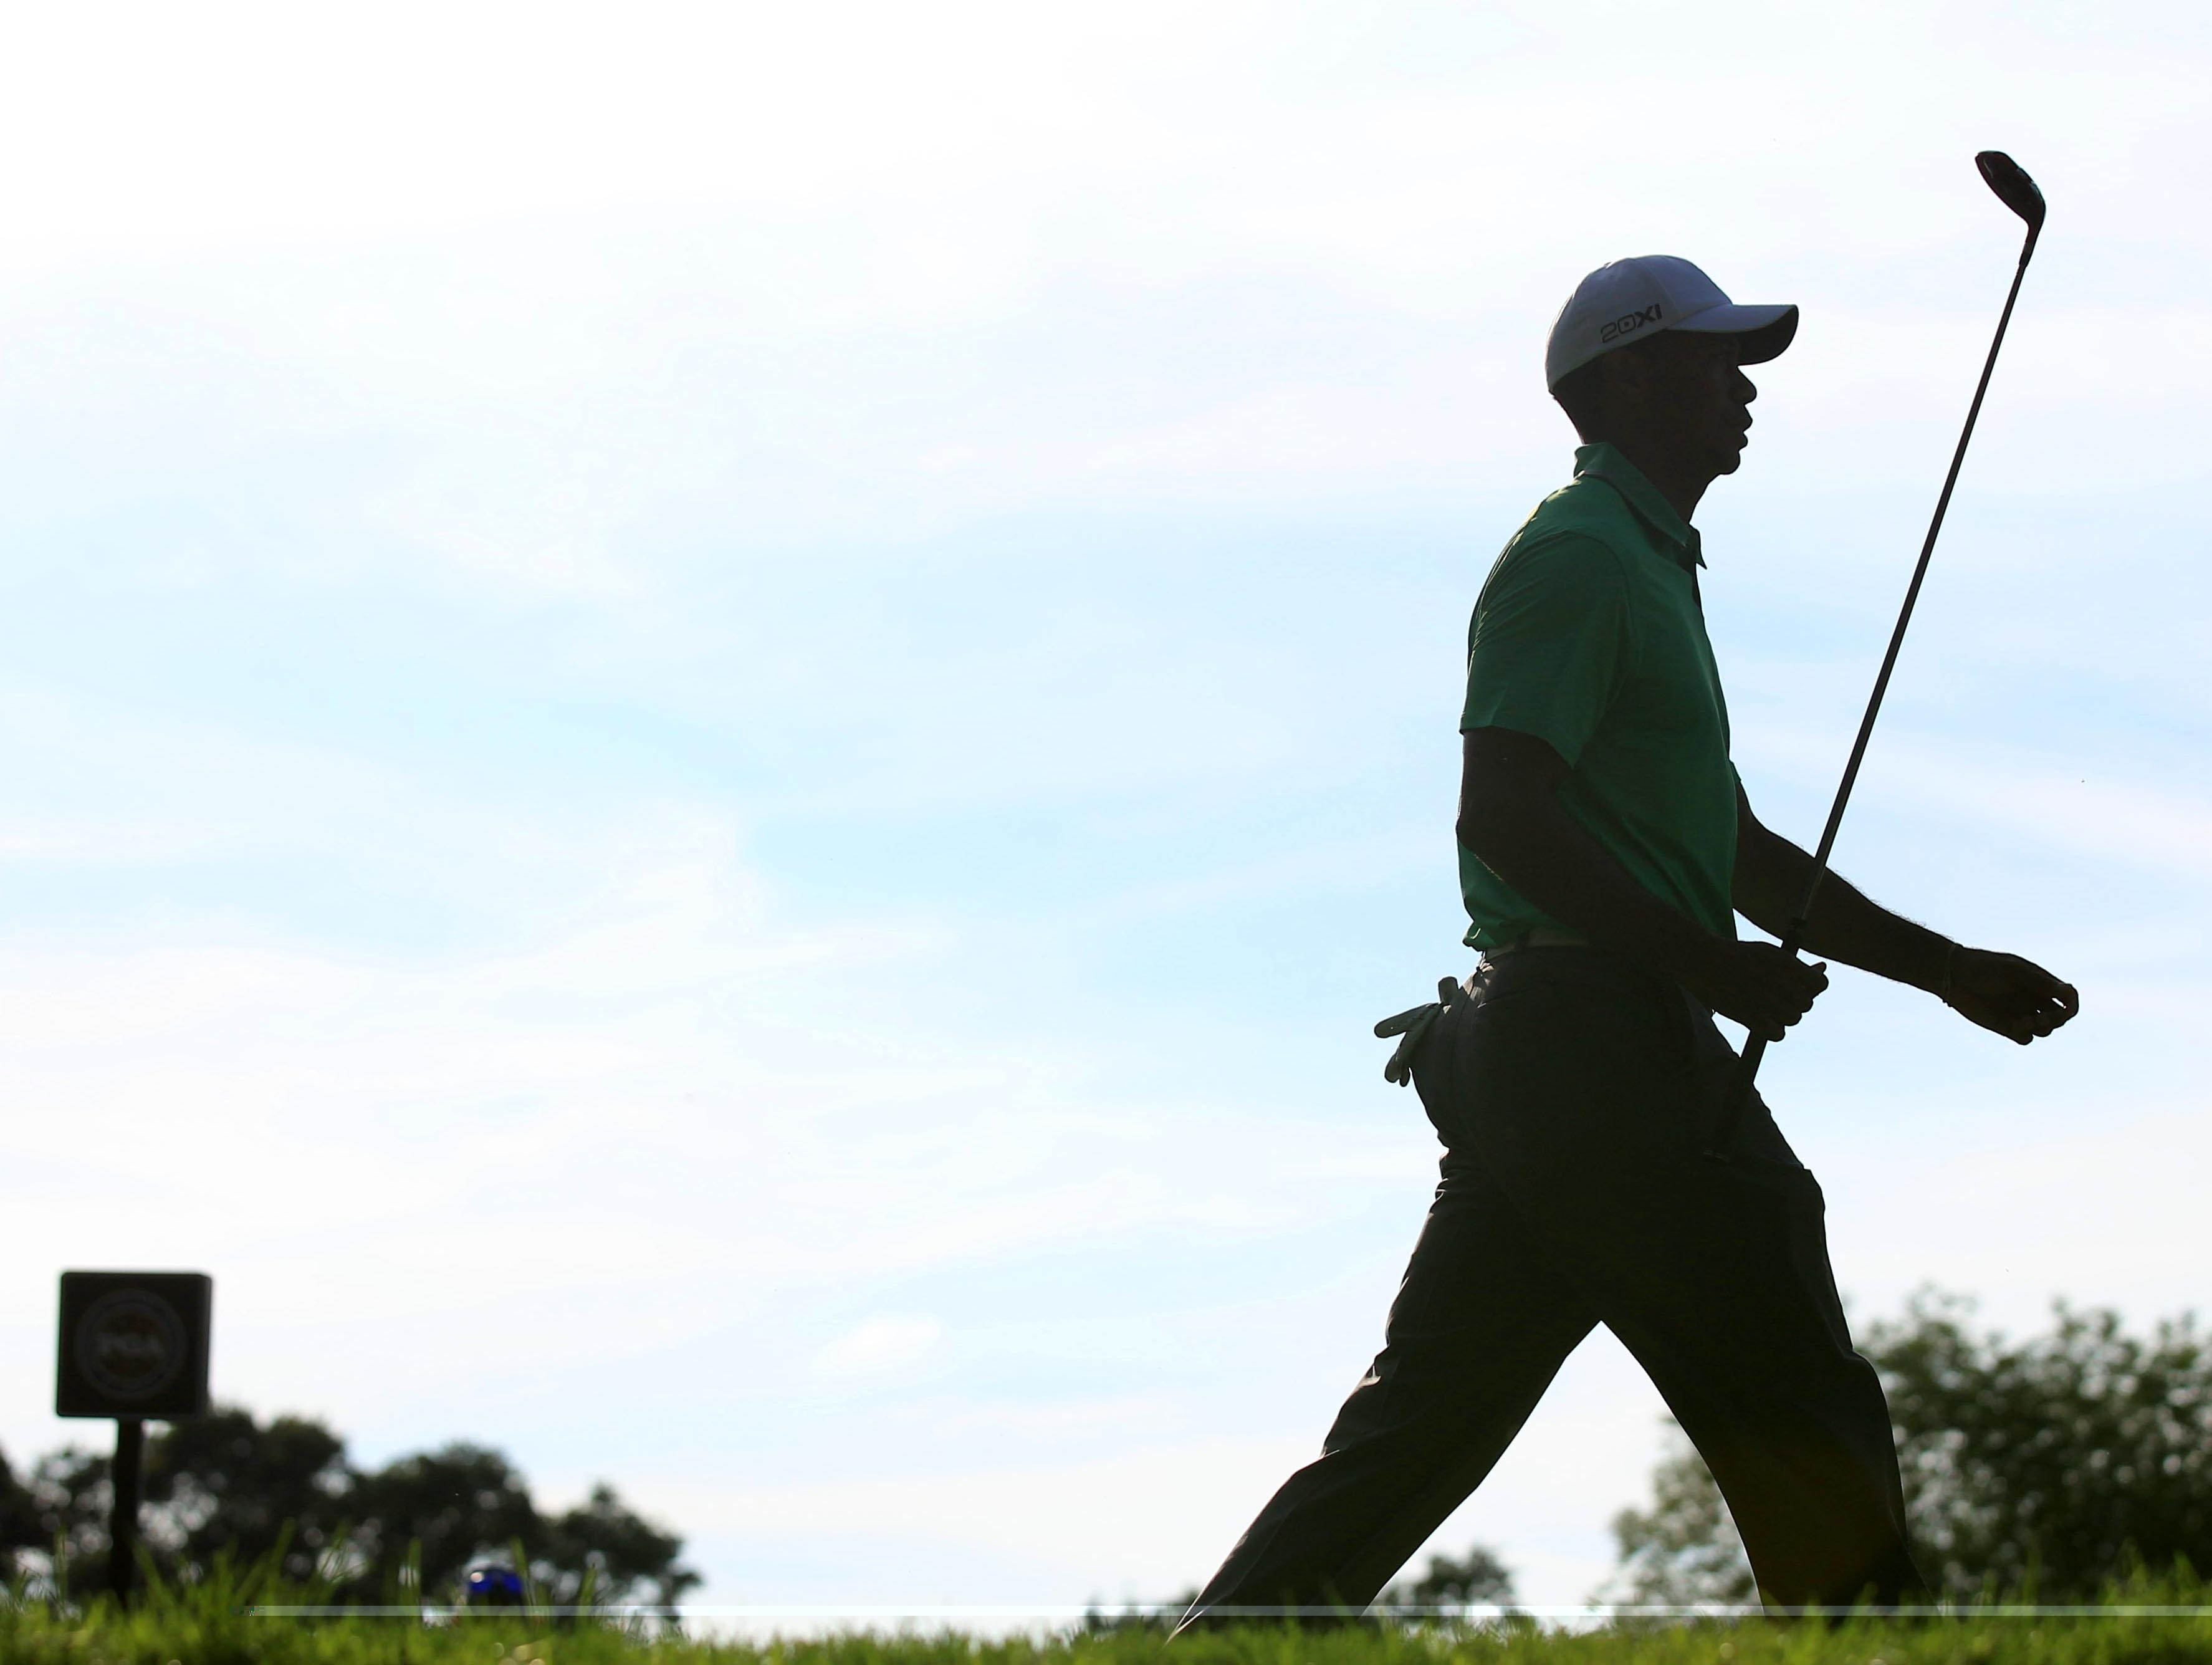 Tiger Woods walks off the 10th tee during Friday's second round of the 95th PGA Championship. Woods finished with an even par 70 to keep him at plus 1, eight strokes behind leader Jason Dufner's minus 9.